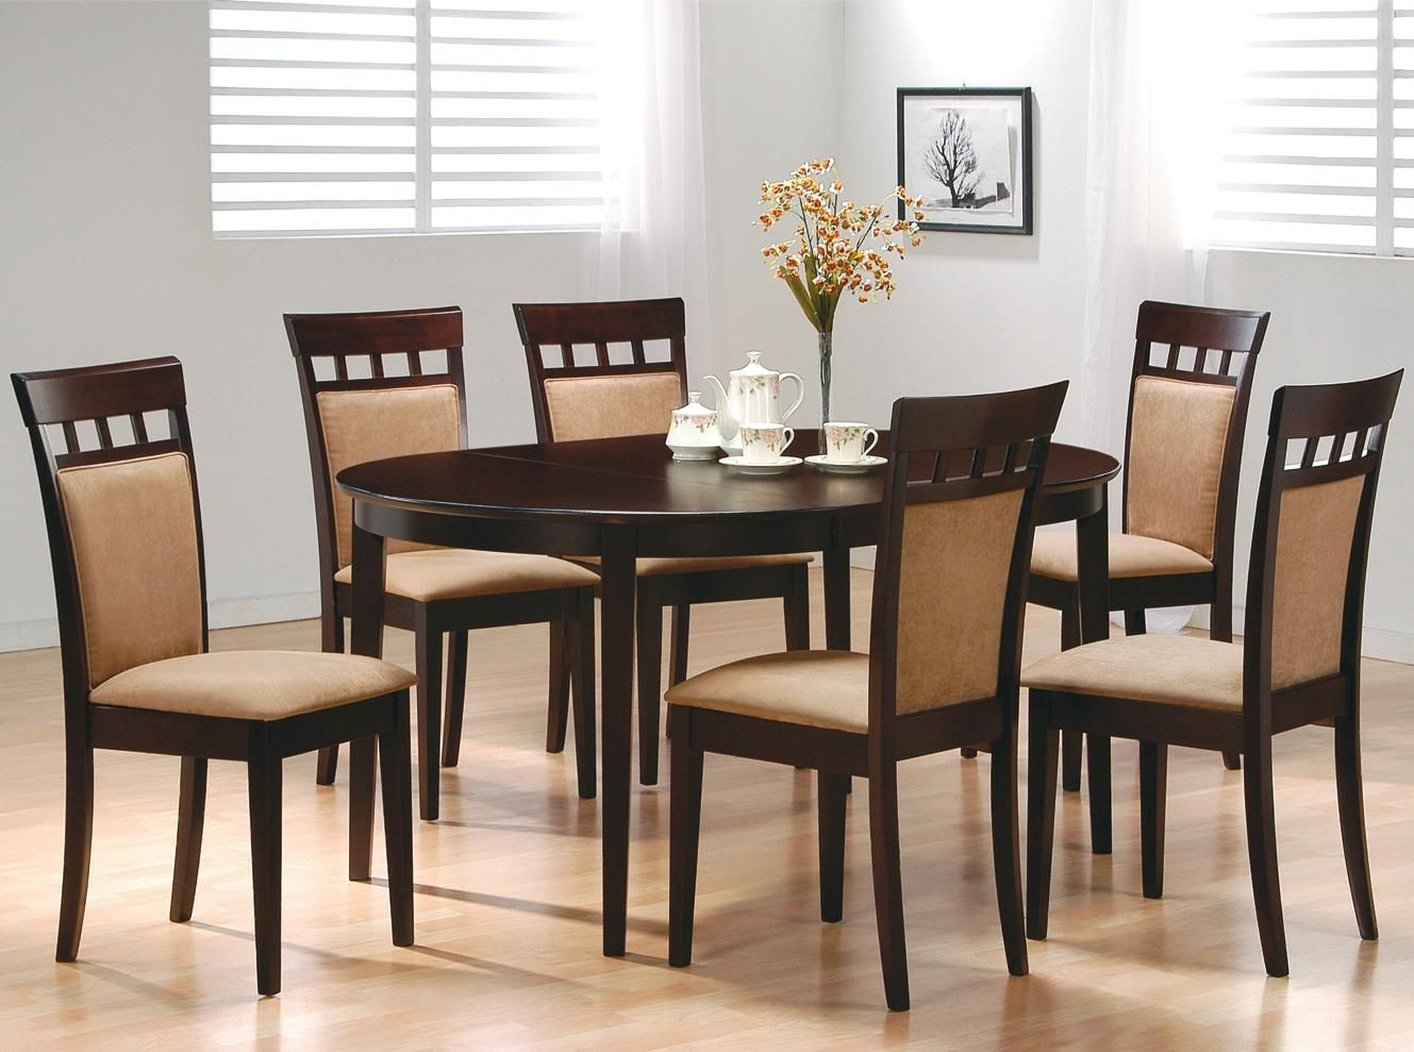 Wooden dining chairs with cushion - Brown Wood Dining Chair Brown Wood Dining Chair